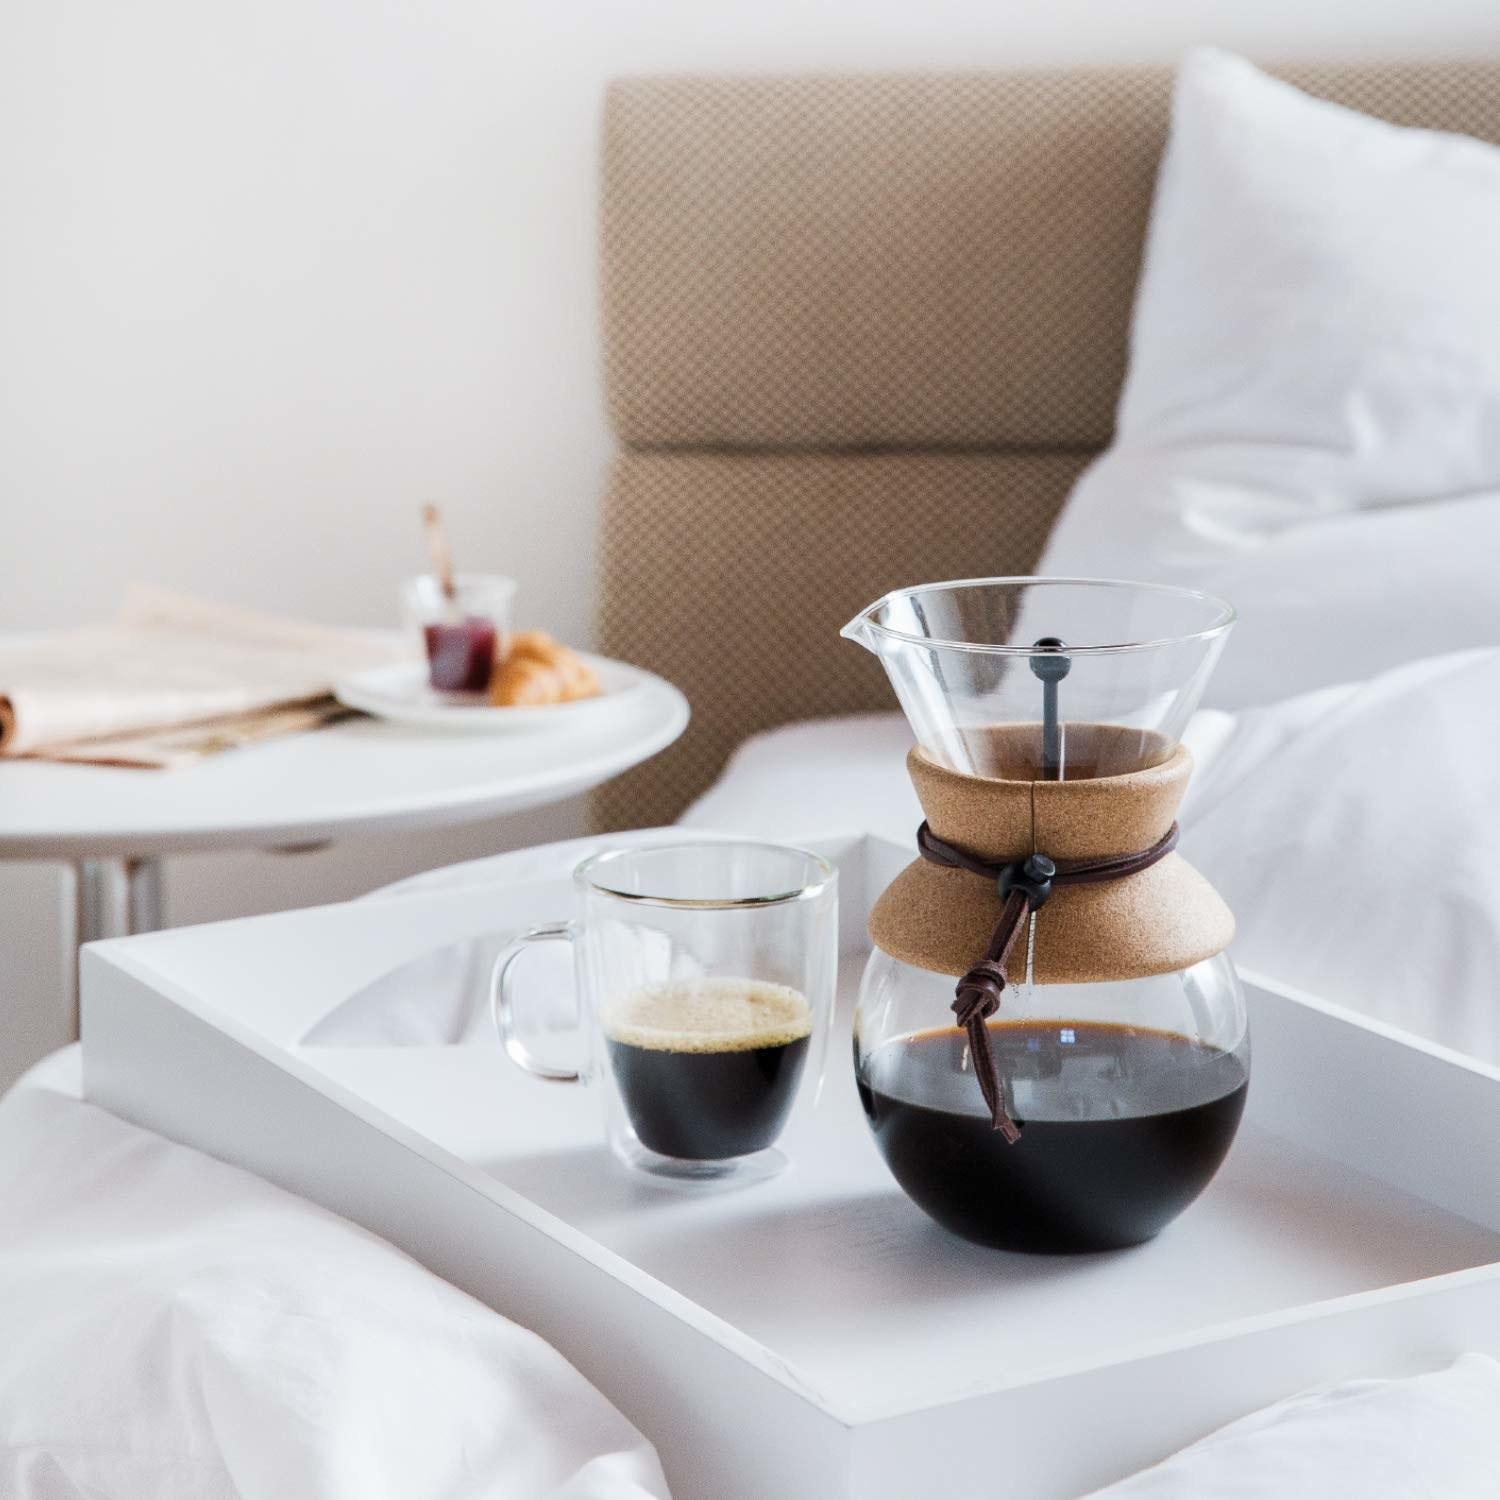 The coffee maker with cork in the middle with coffee in it and a coffee cup next to it